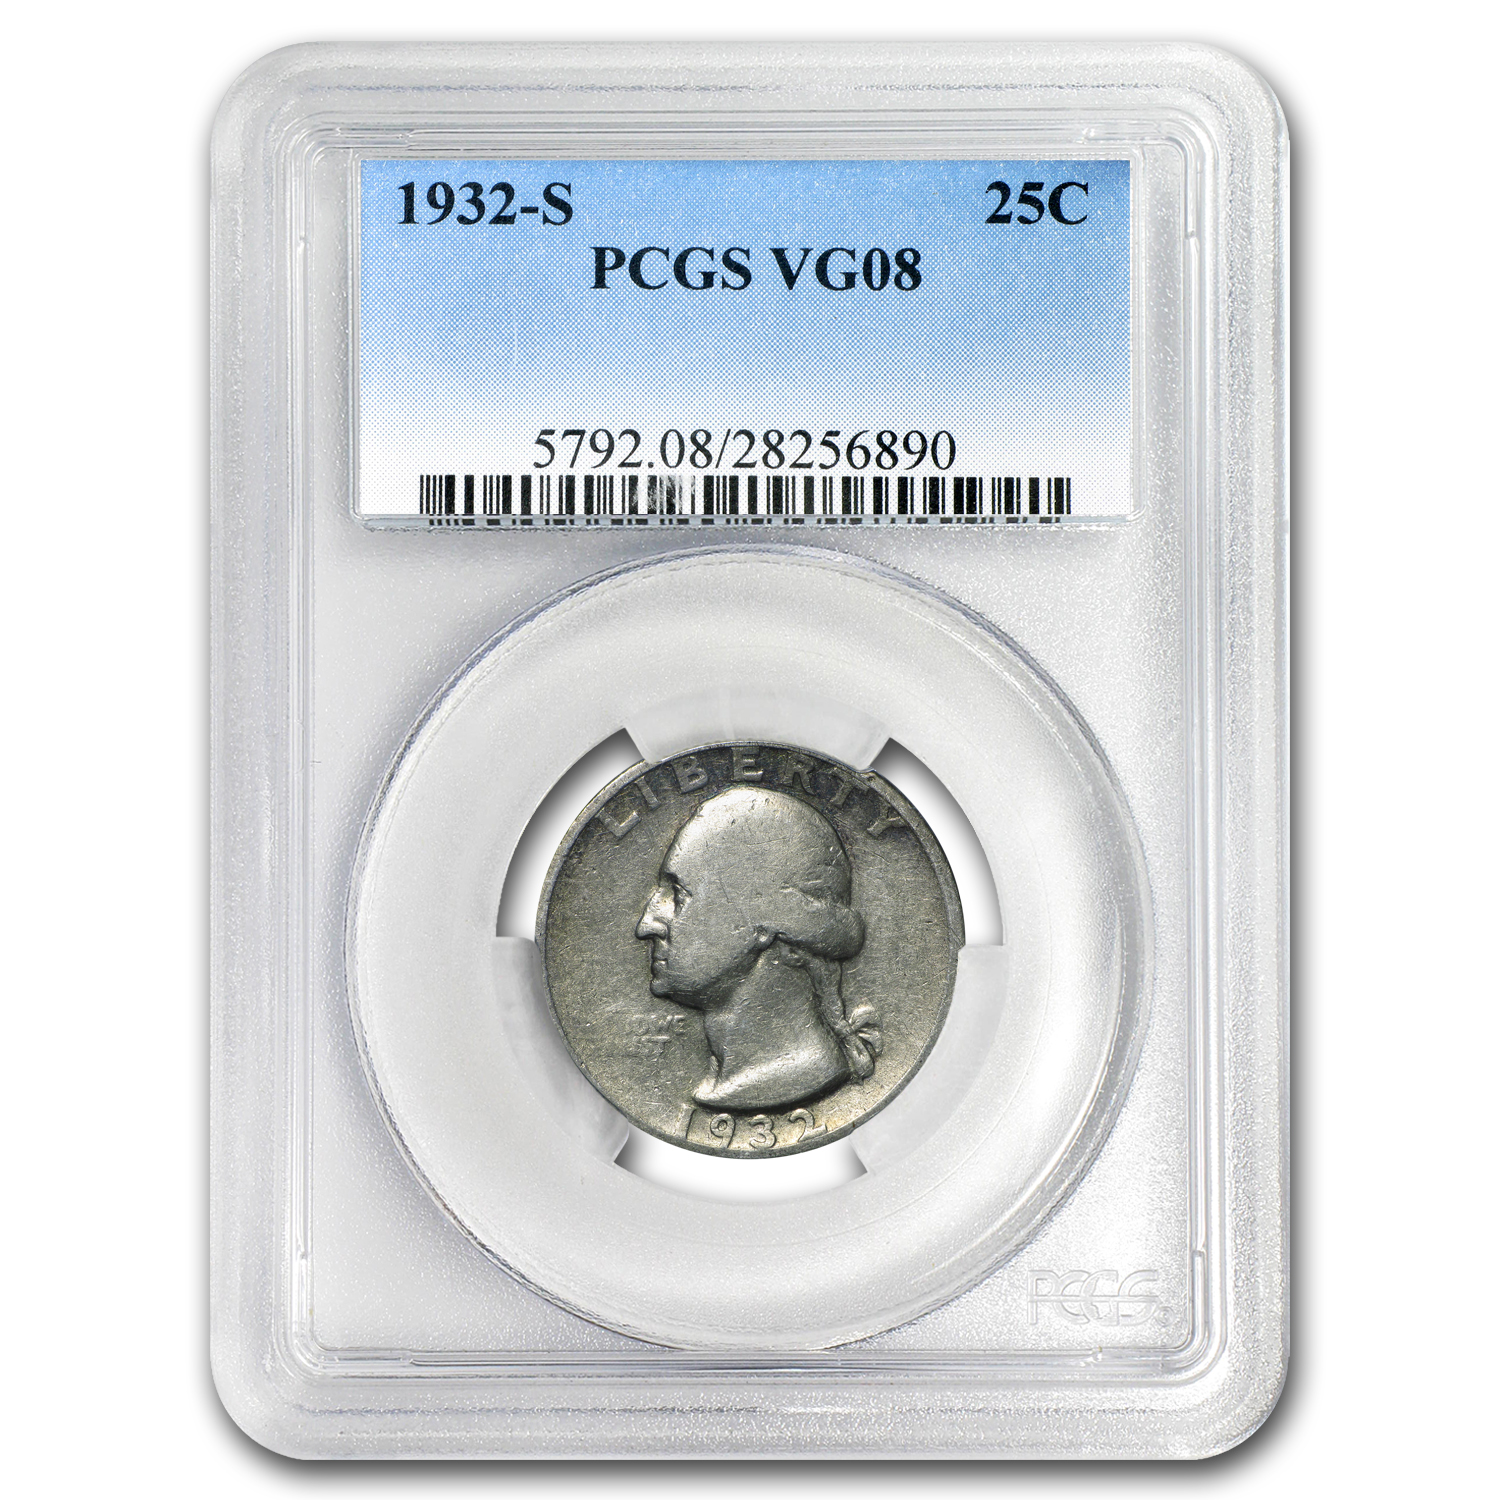 1932-S Washington Quarter VG-8 PCGS